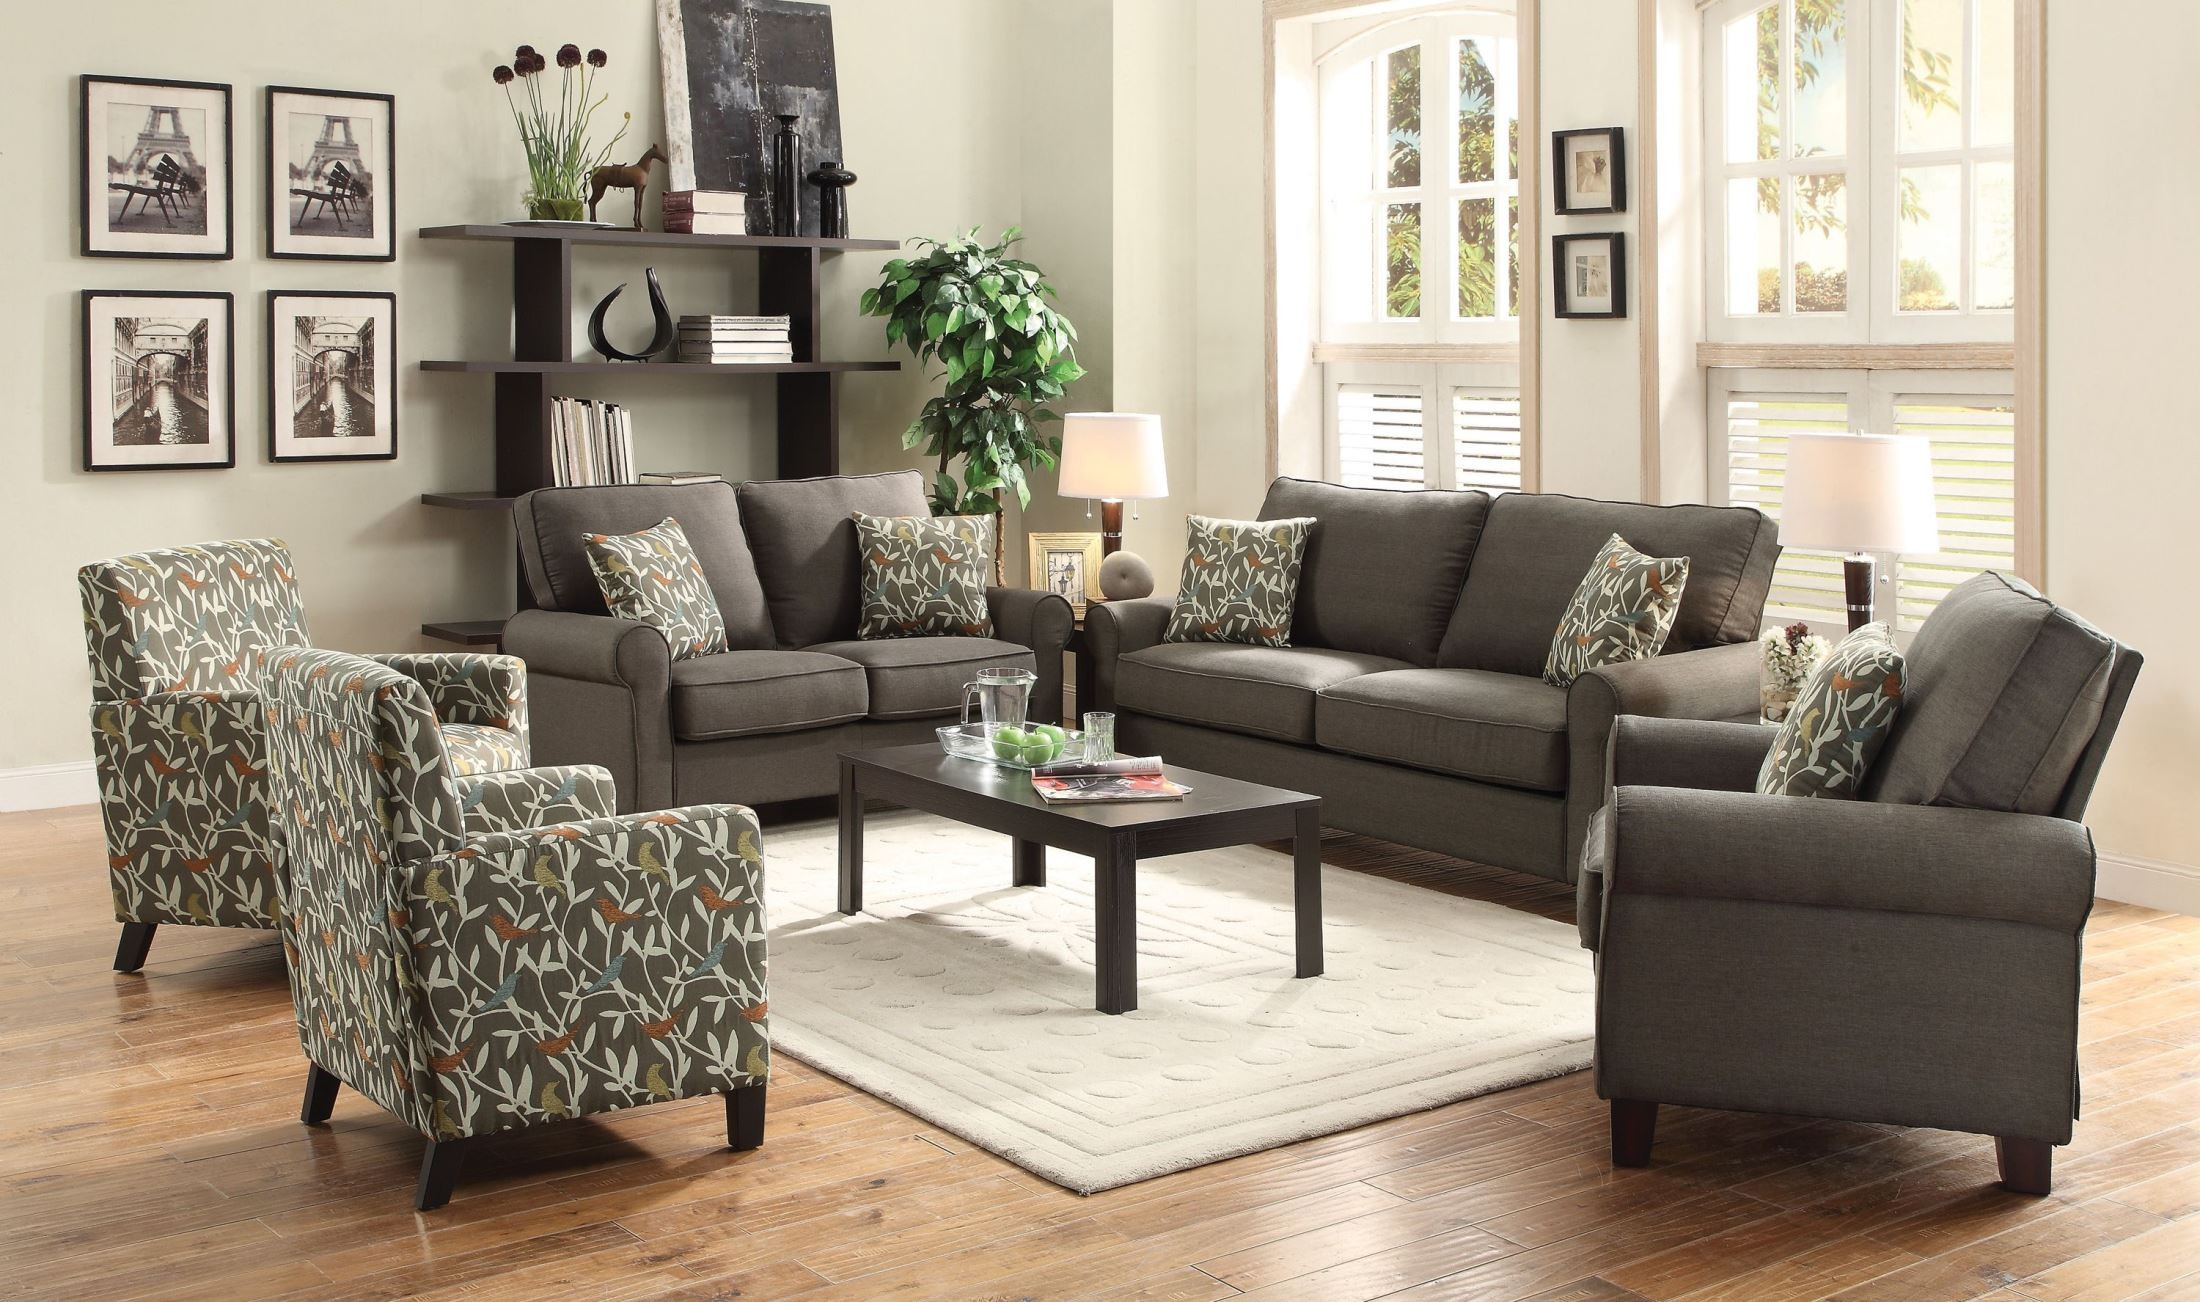 set living room furniture noella grey living room set from coaster 504781 16460